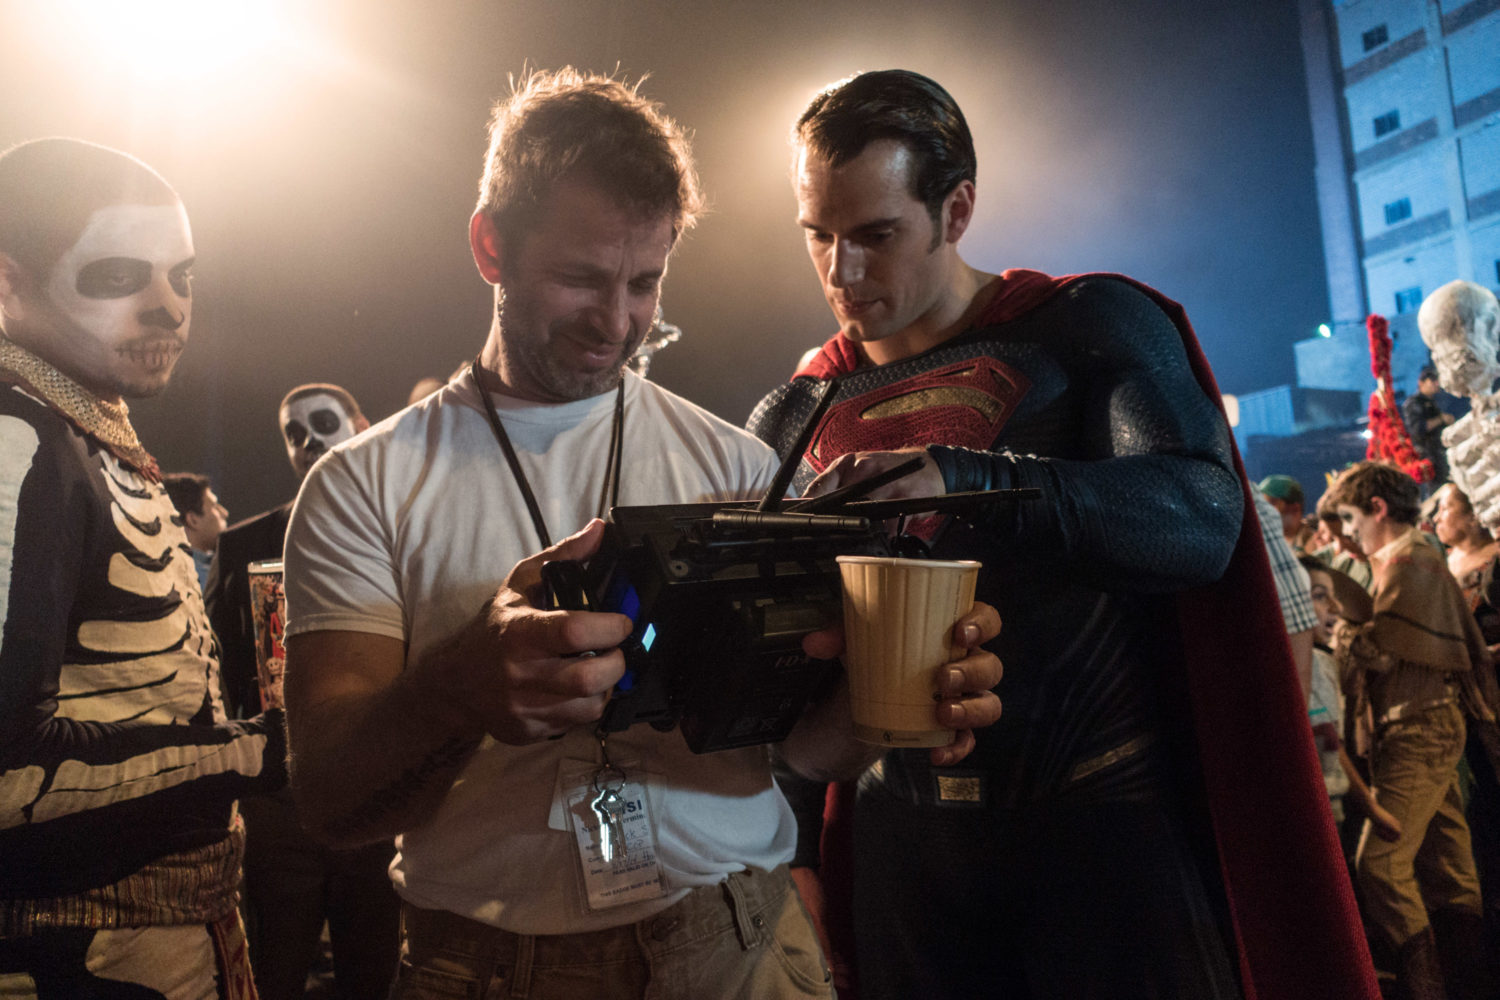 Zack Snyder directing Henry Cavill in Batman v Superman: Dawn of Justice